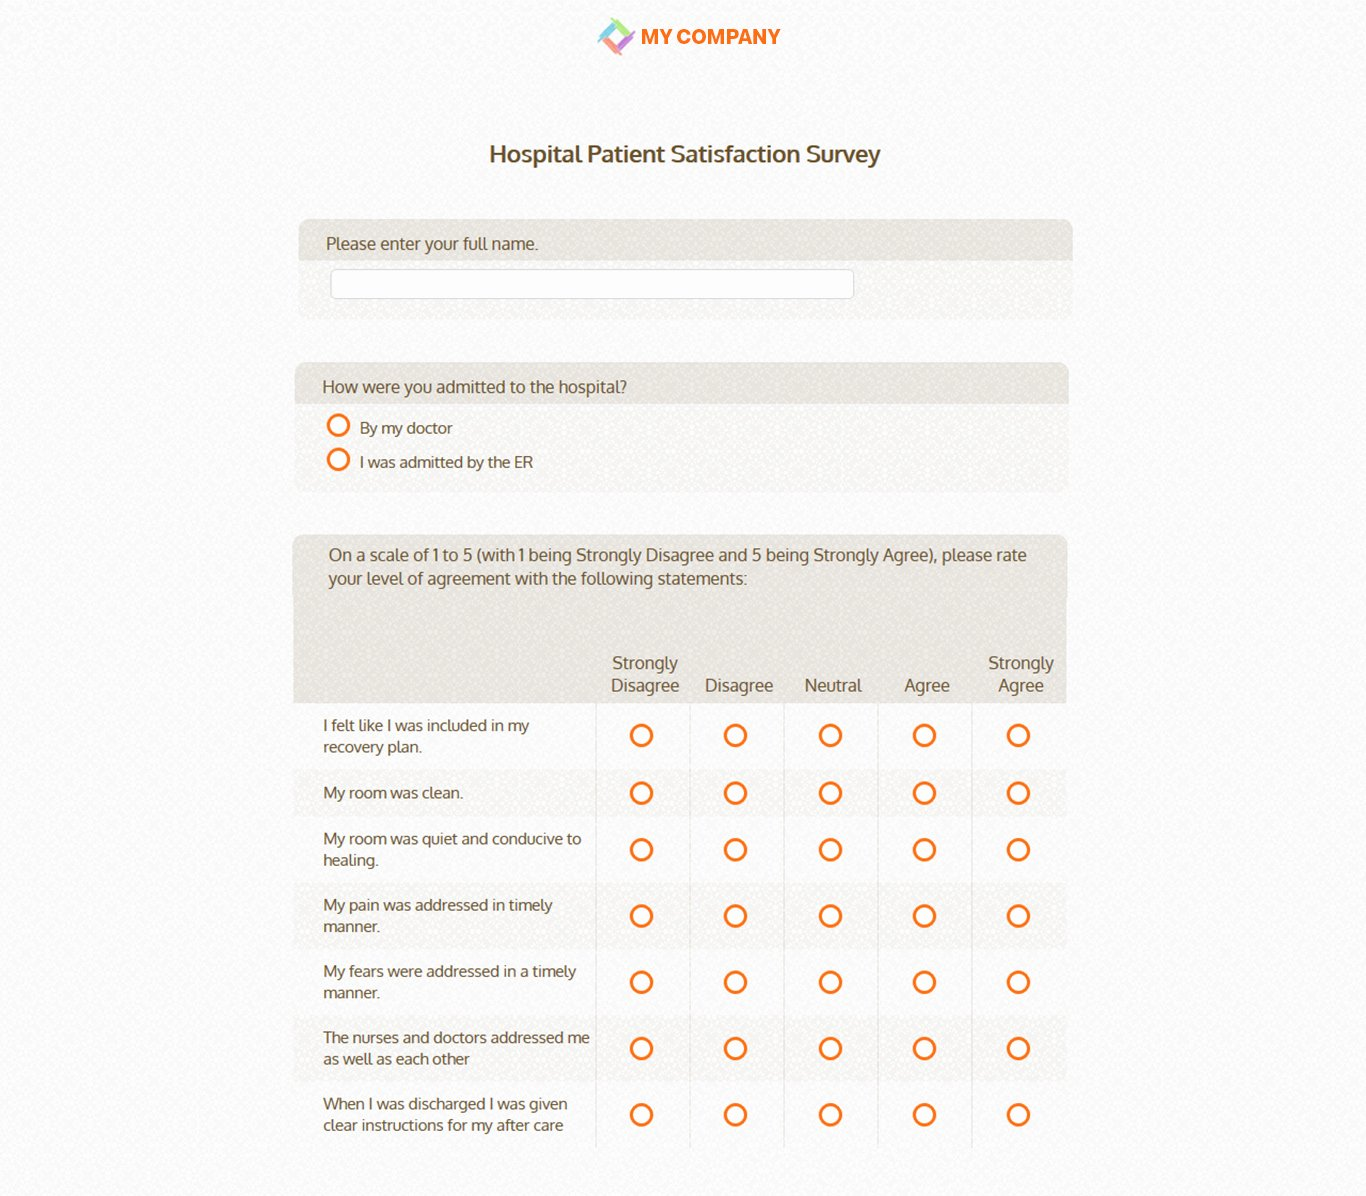 Patient Satisfaction Survey Template Fresh Patient Satisfaction Survey Template [21 Questions